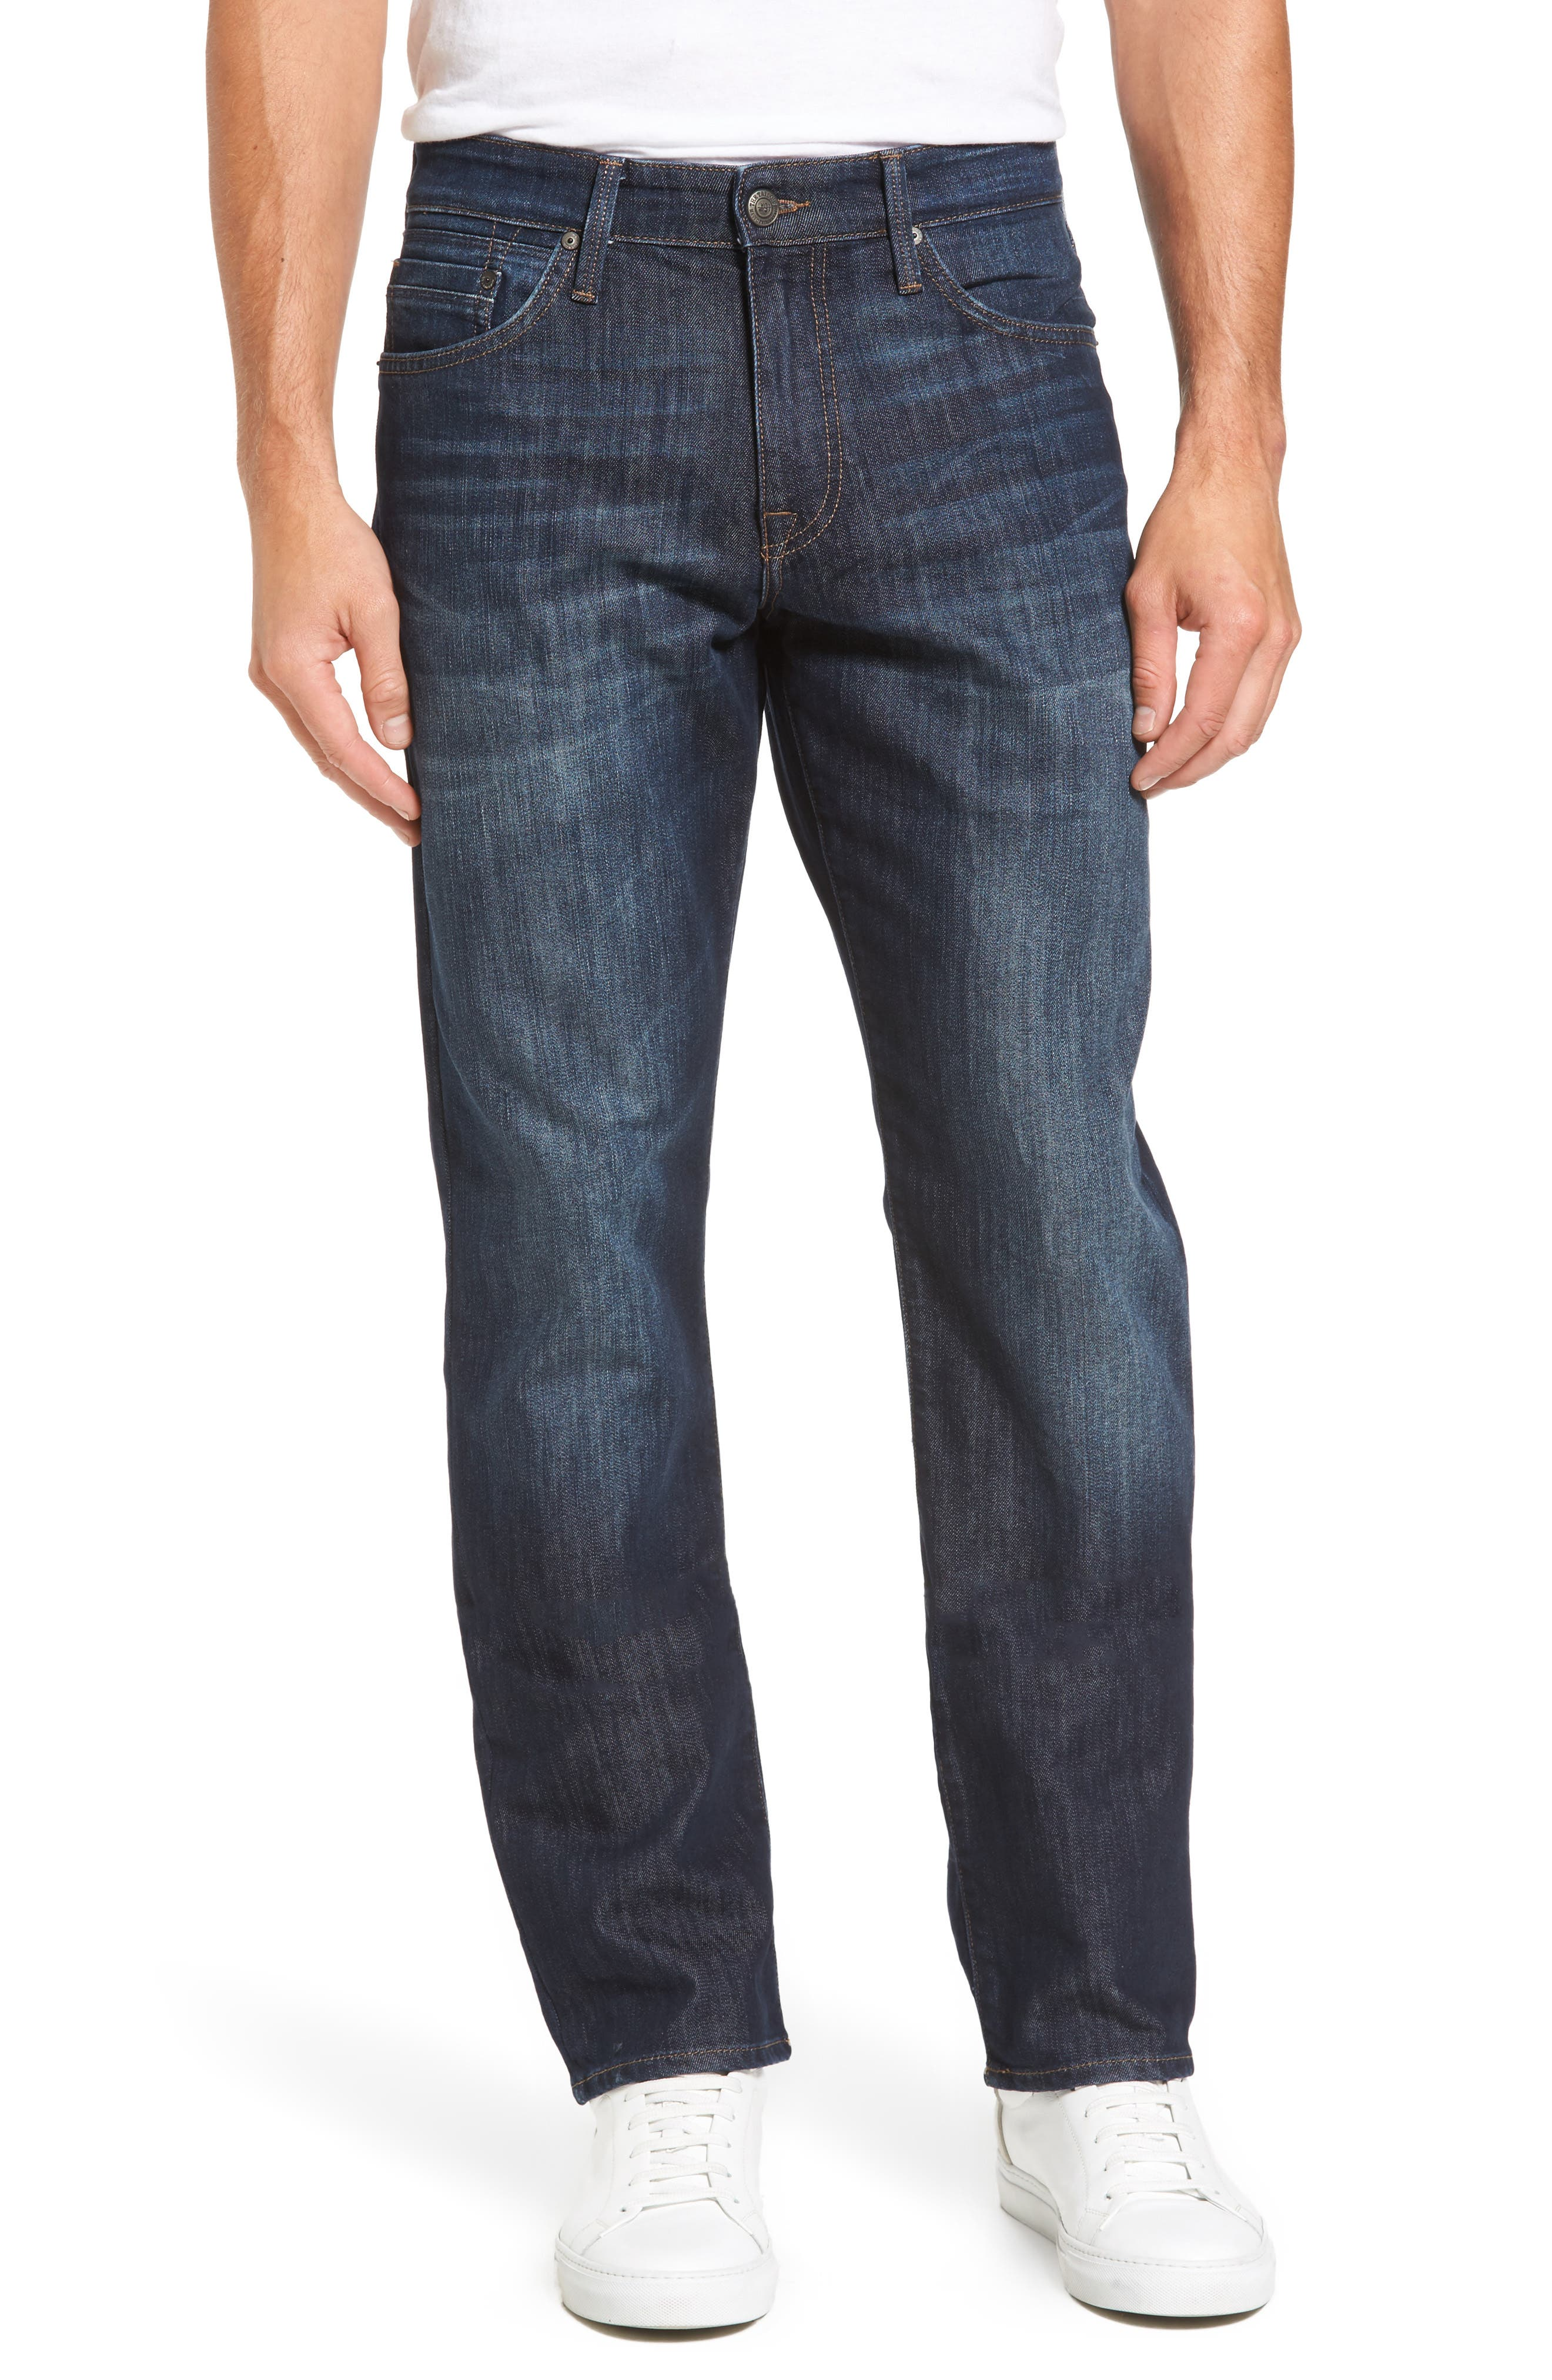 Matt Relaxed Fit Jeans,                         Main,                         color, Dark Stanford